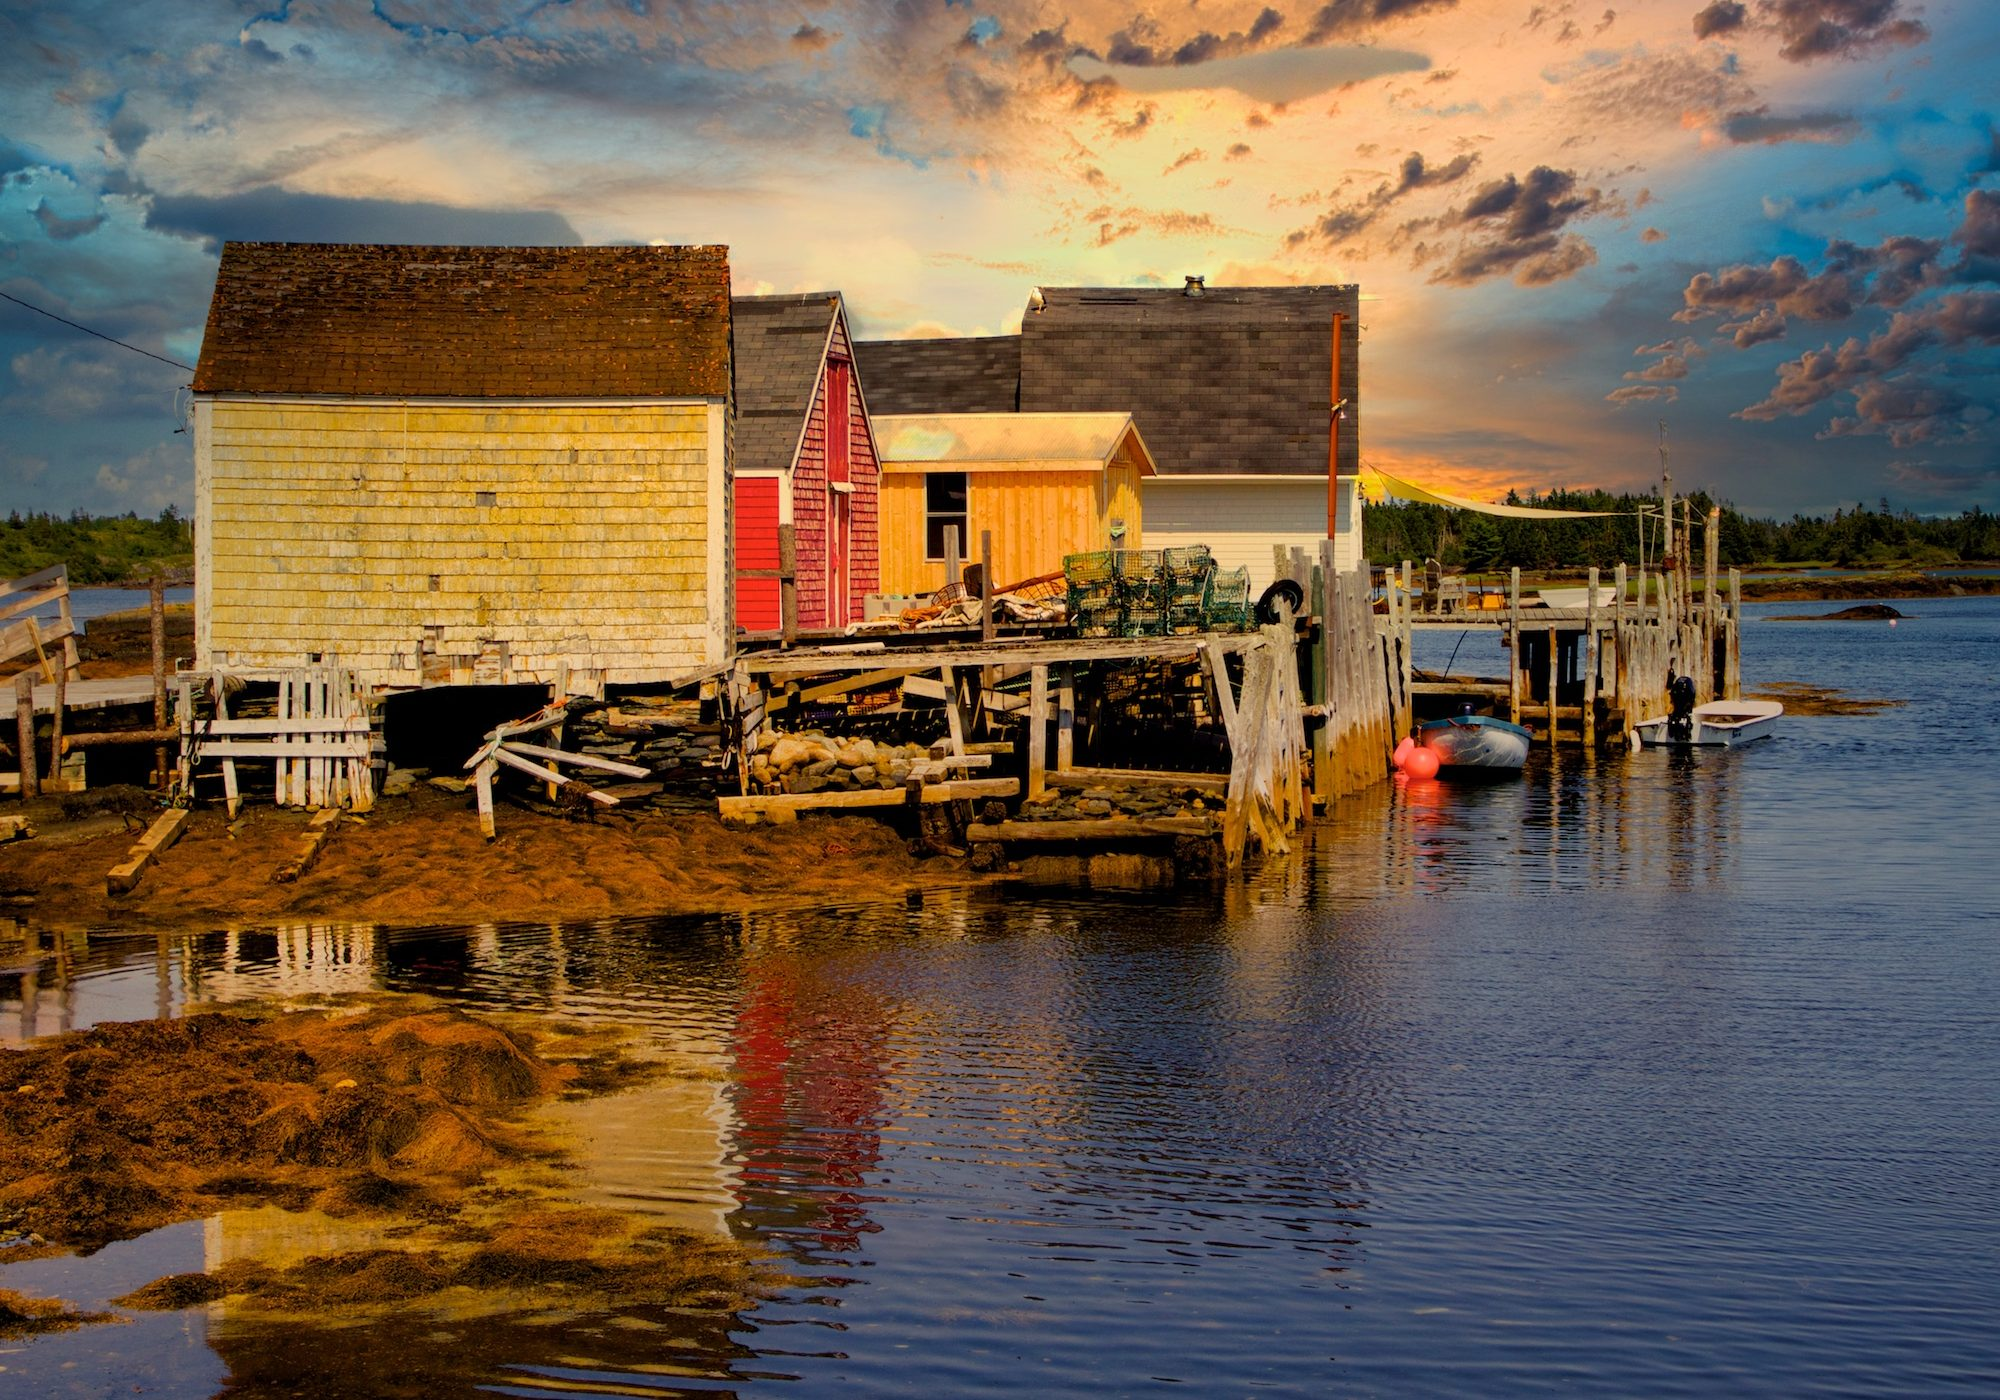 Golden Hour Slider and the Magic Reflection - Fred Raiford